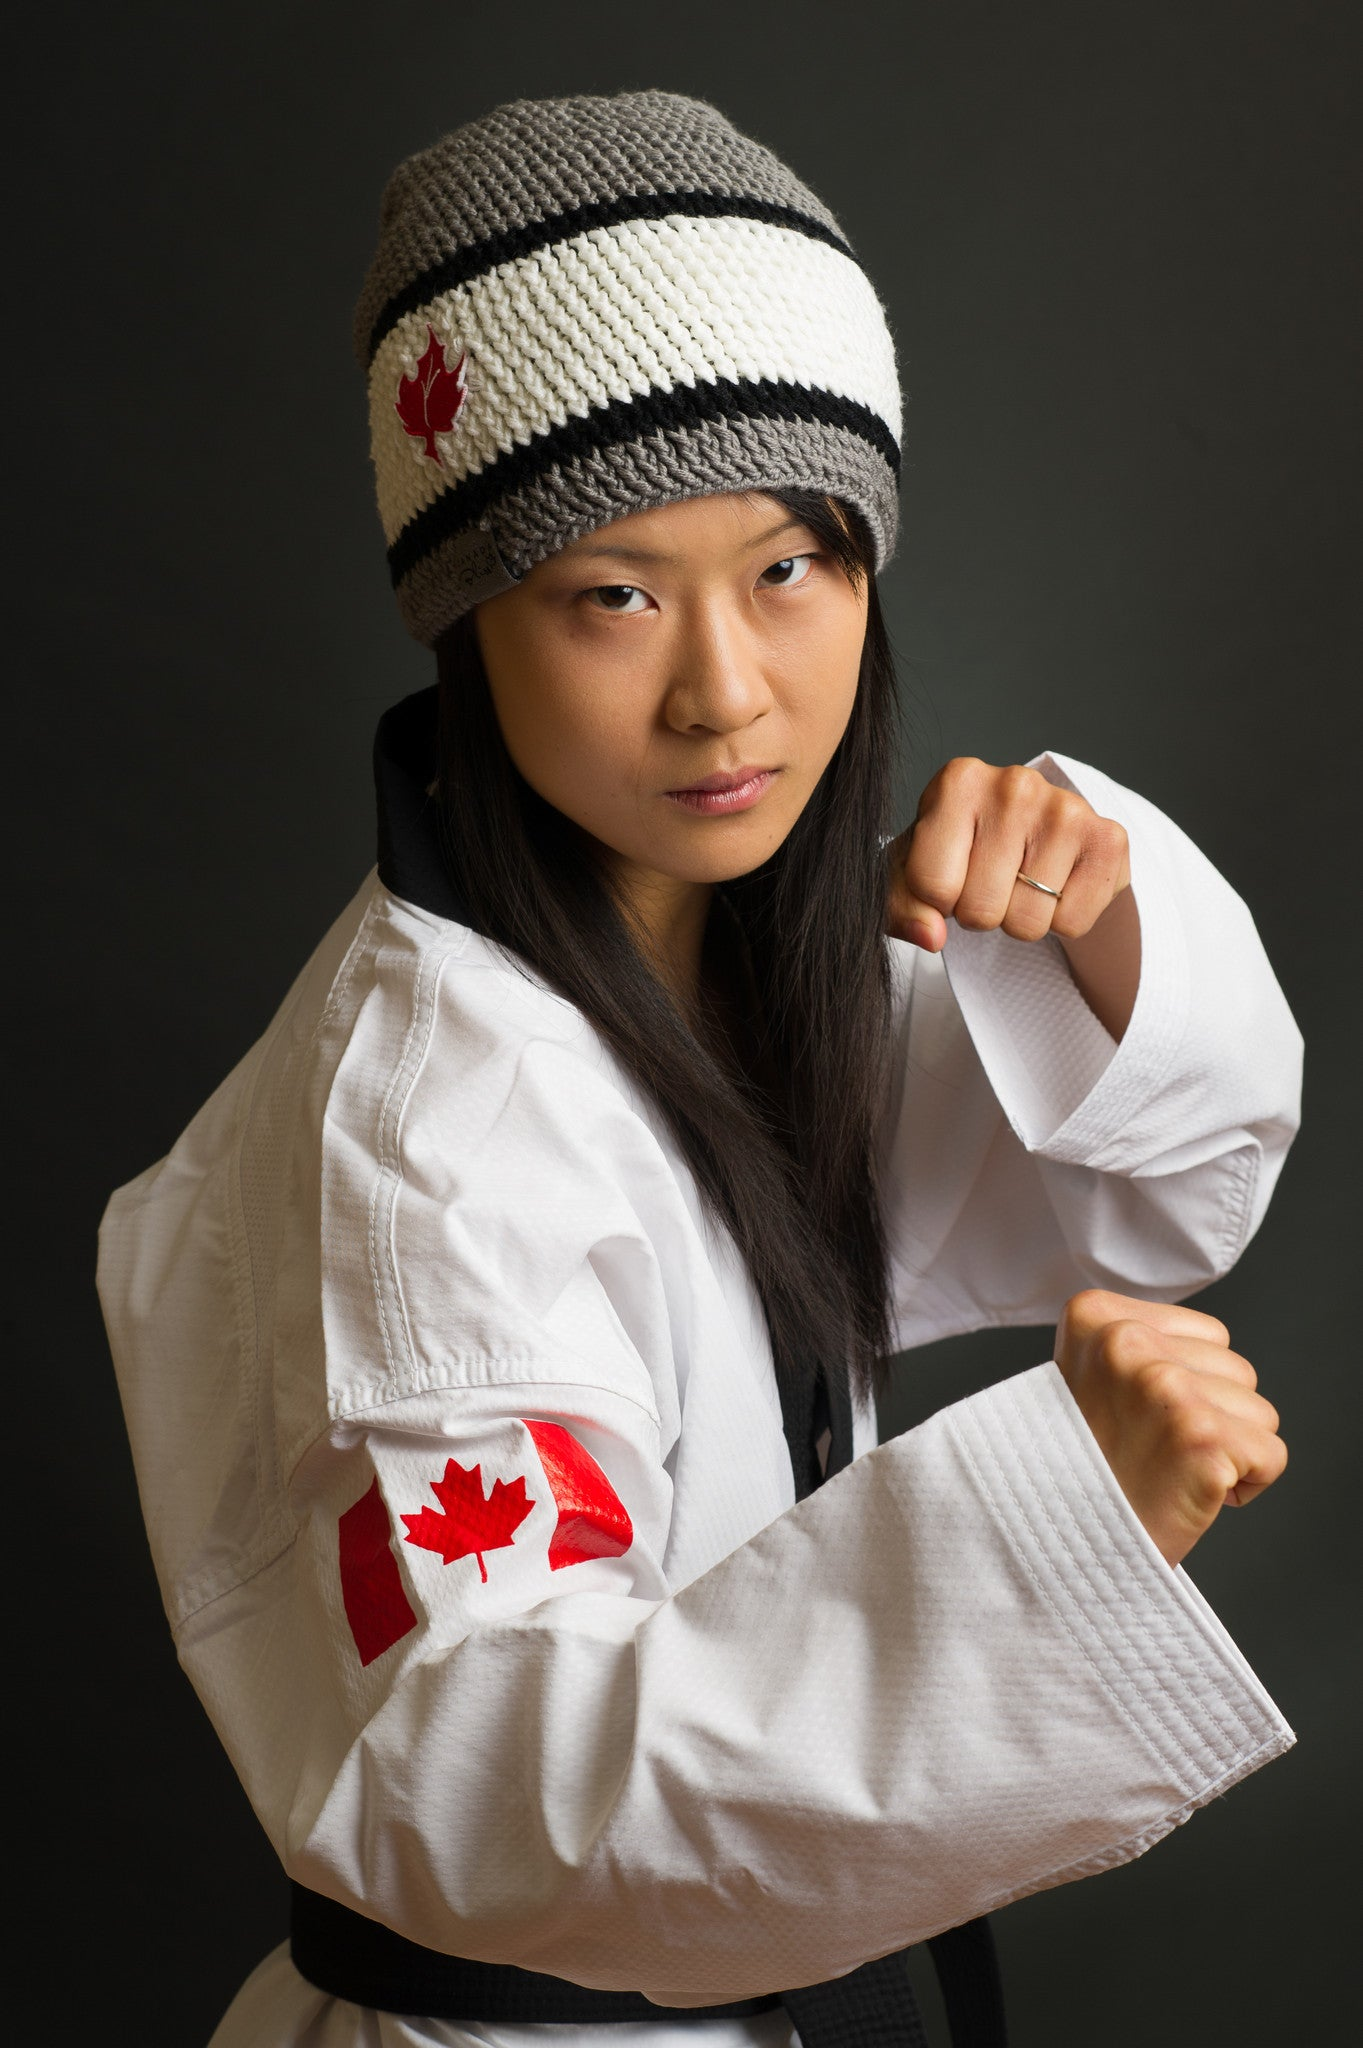 SPECIAL EDITION TRIBUTE HAT Sponsoring Team Canada s Yvette Yong ... 0aac08ea0fc